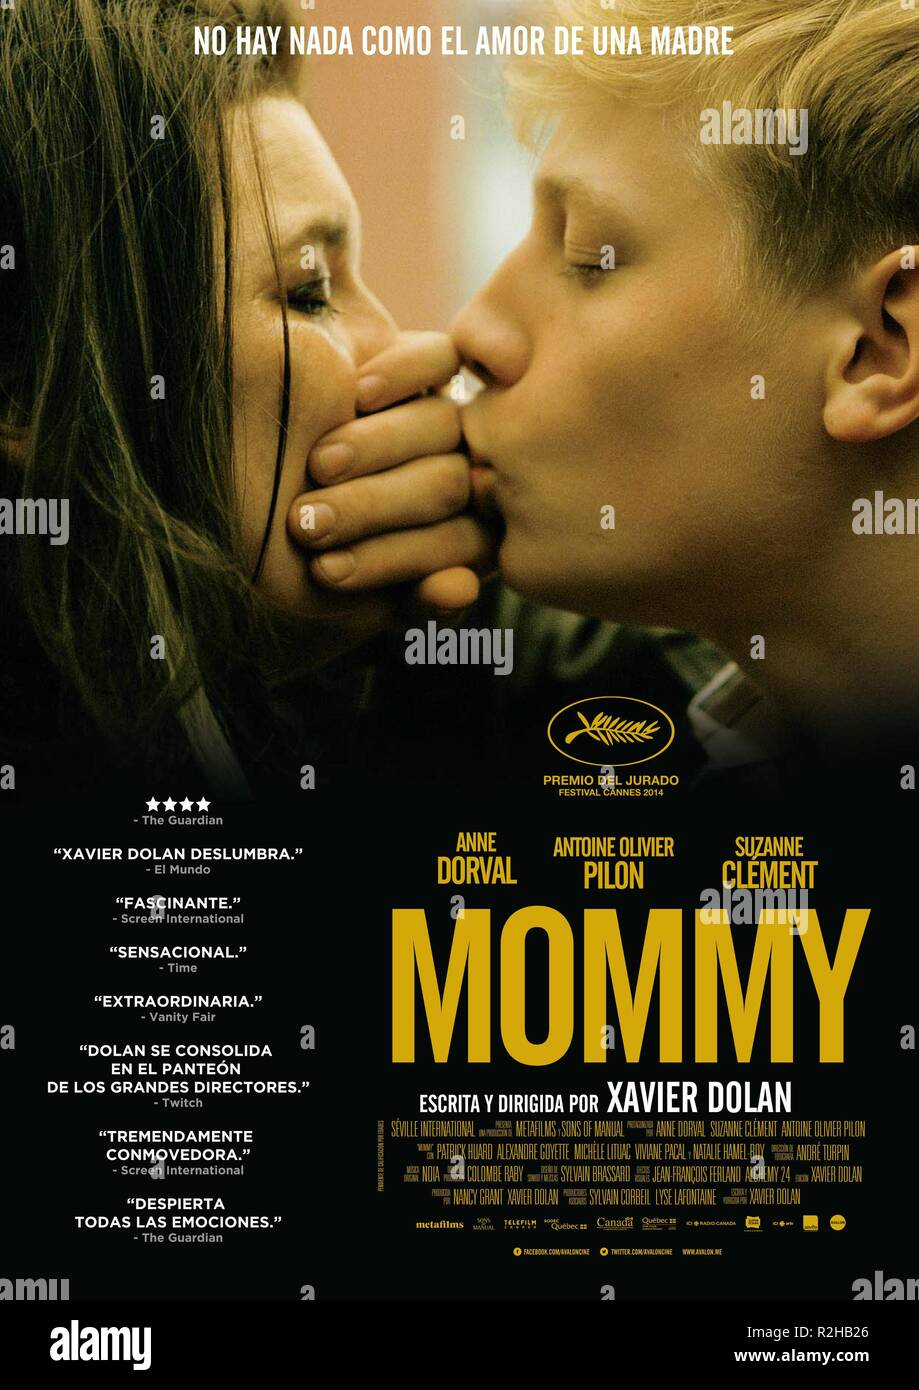 Mommy Year : 2014 Canada Director : Xavier Dolan Anne Dorval, Antoine-Olivier Pilon Movie poster (Sp) - Stock Image